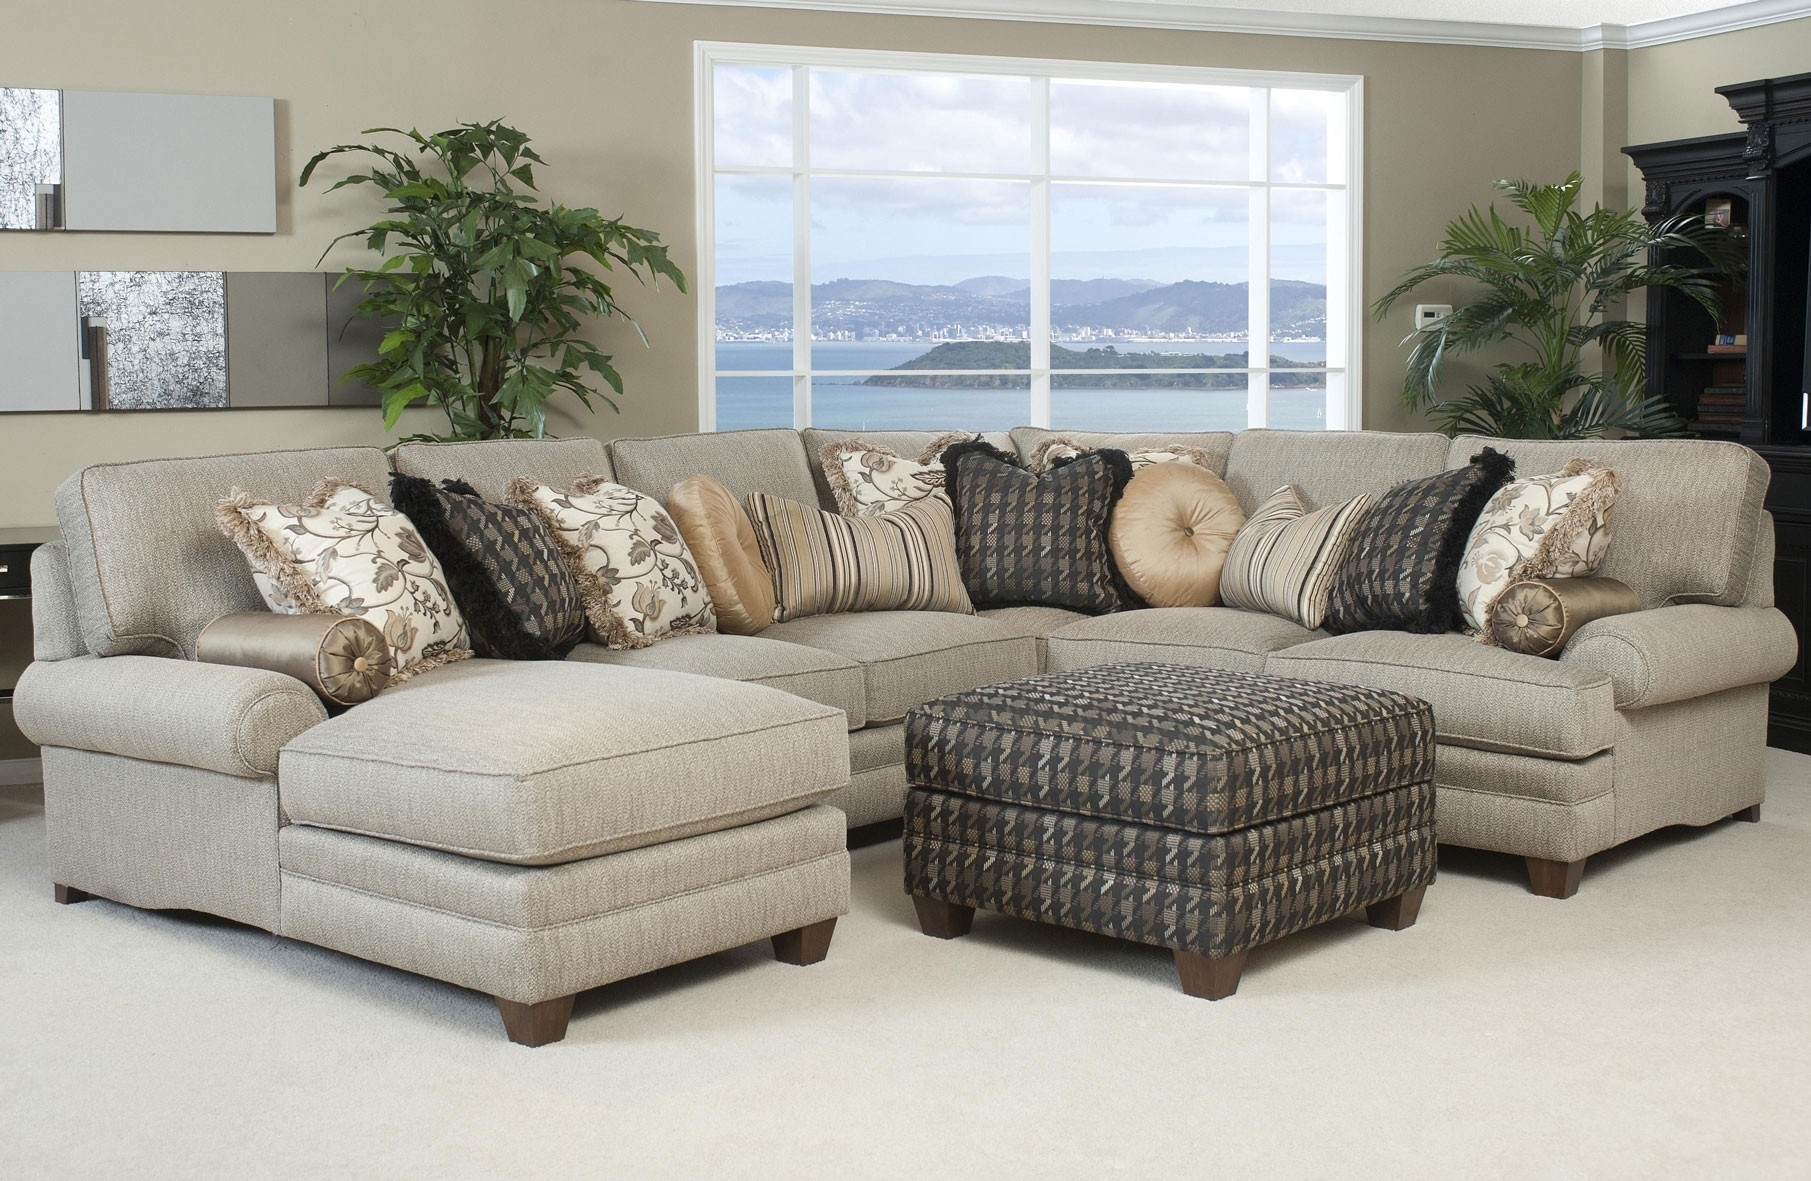 Cheap Sectional Sofas In Roanoke Va | Home Decoration Ideas Inside Roanoke Va Sectional Sofas (View 4 of 10)